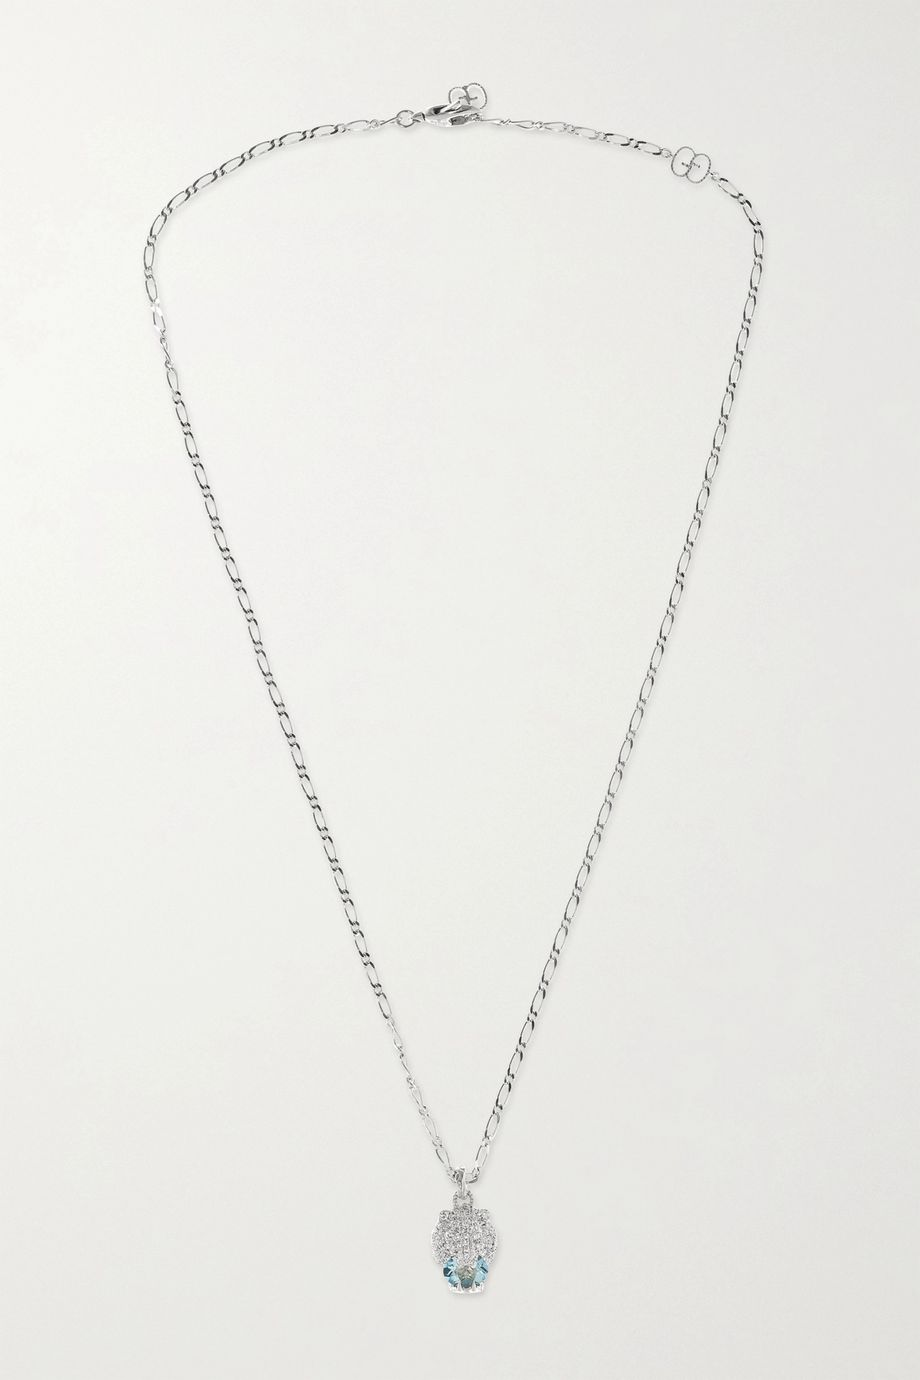 GUCCI 18-karat white gold, diamond and aquamarine necklace